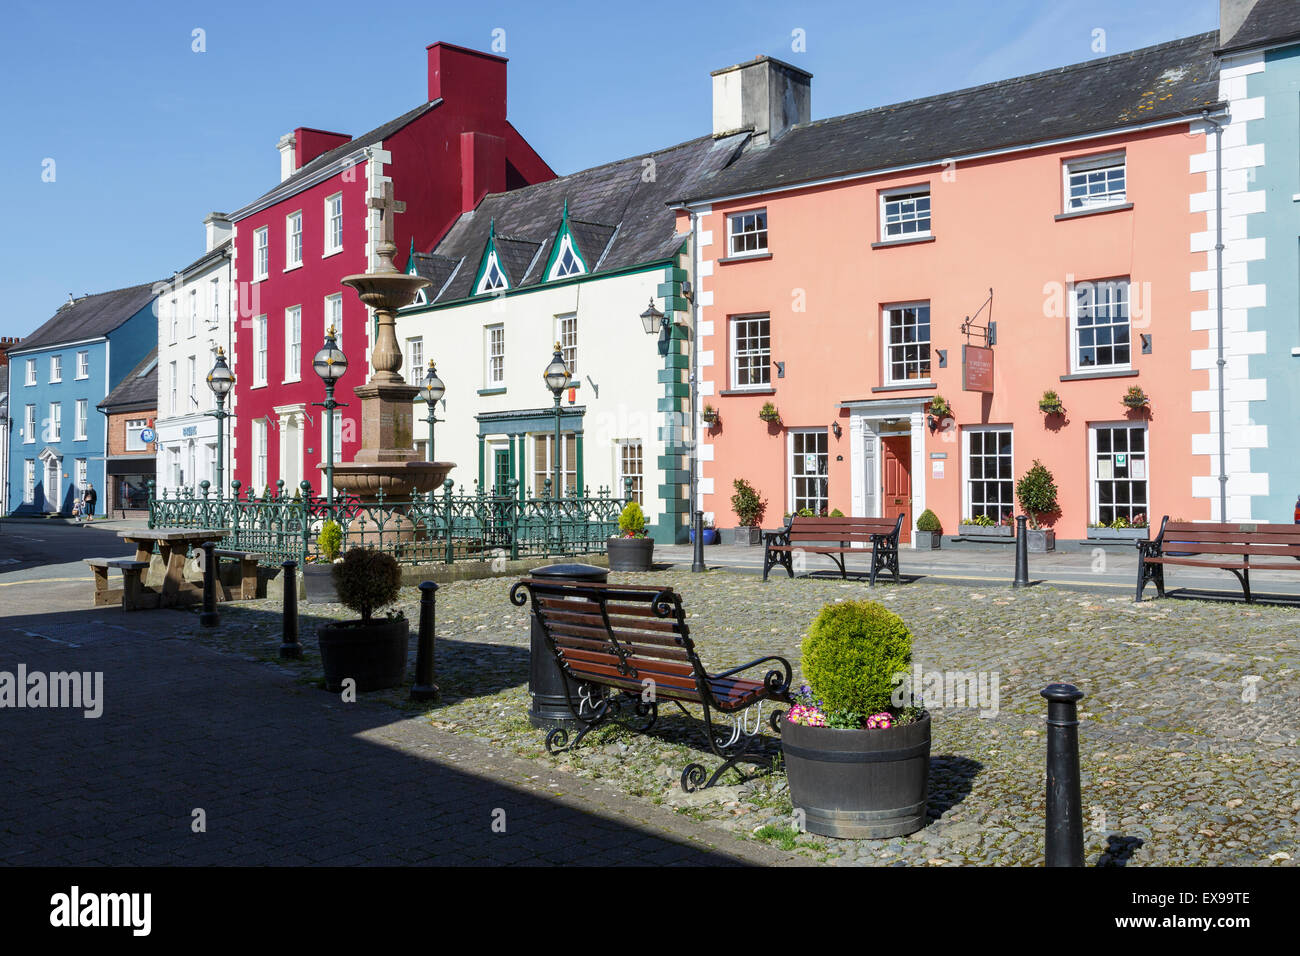 Colourful buildings in the Market Square, Llandovery, Carmarthenshire, Wales - Stock Image